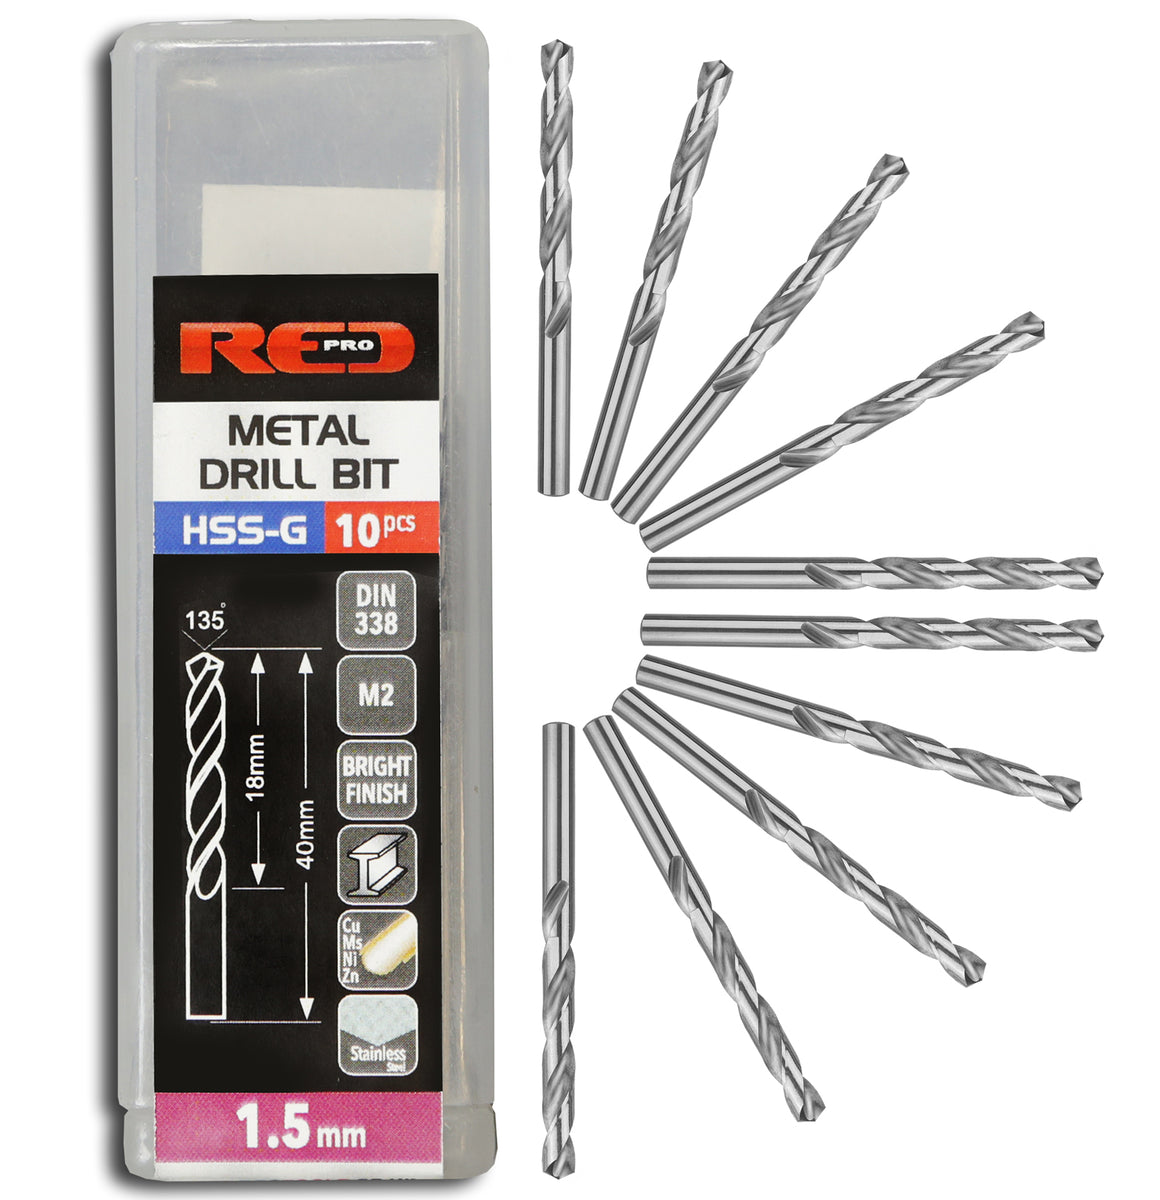 Red Pro Tools Metal Drill Bit HSS-G 1.5mm - 10 Pieces